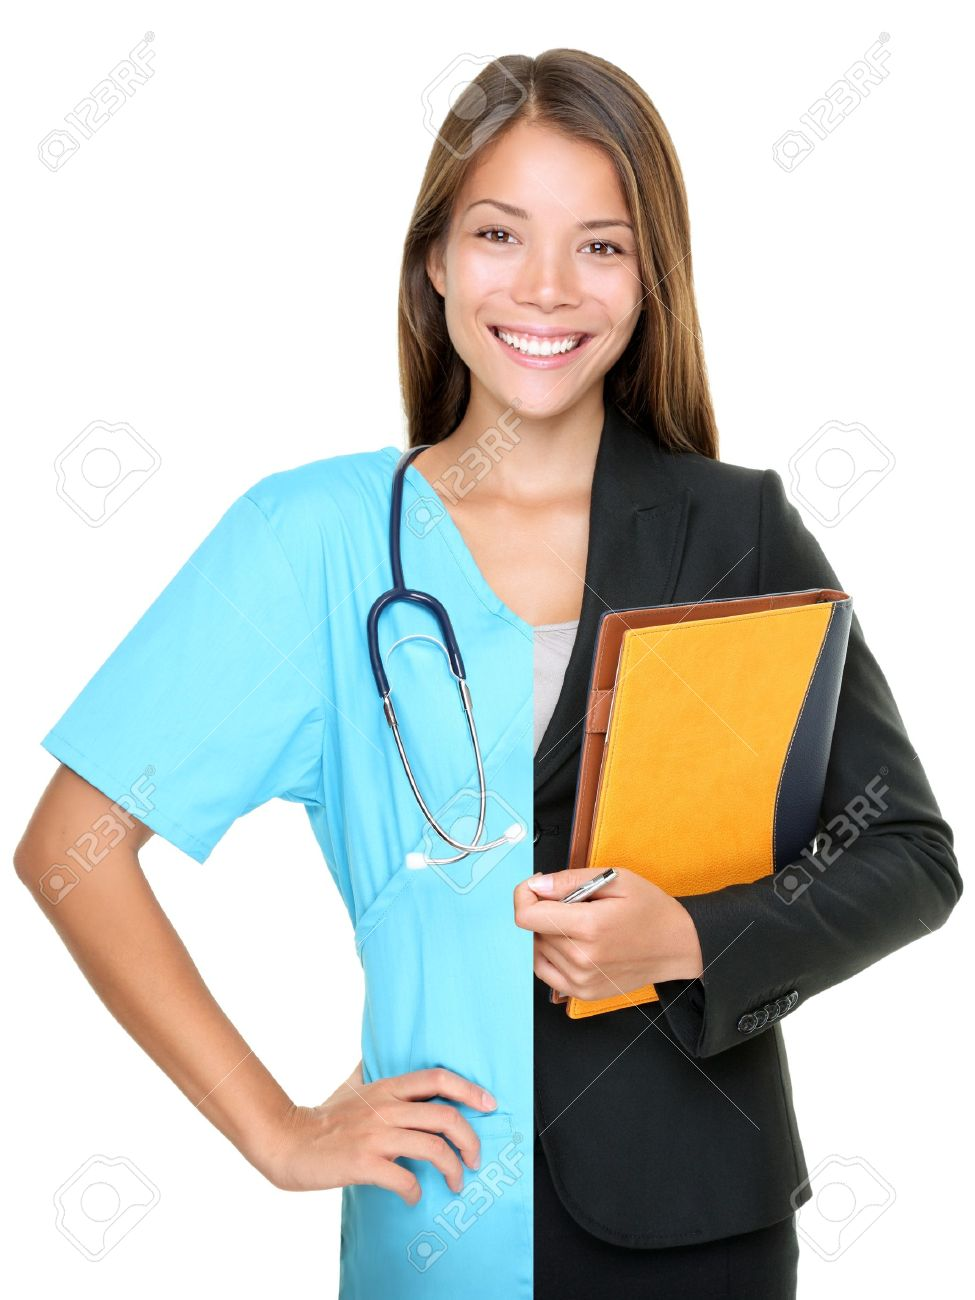 career choice concept w split half and half in businessw career choice concept w split half and half in businessw and medical doctor nurse